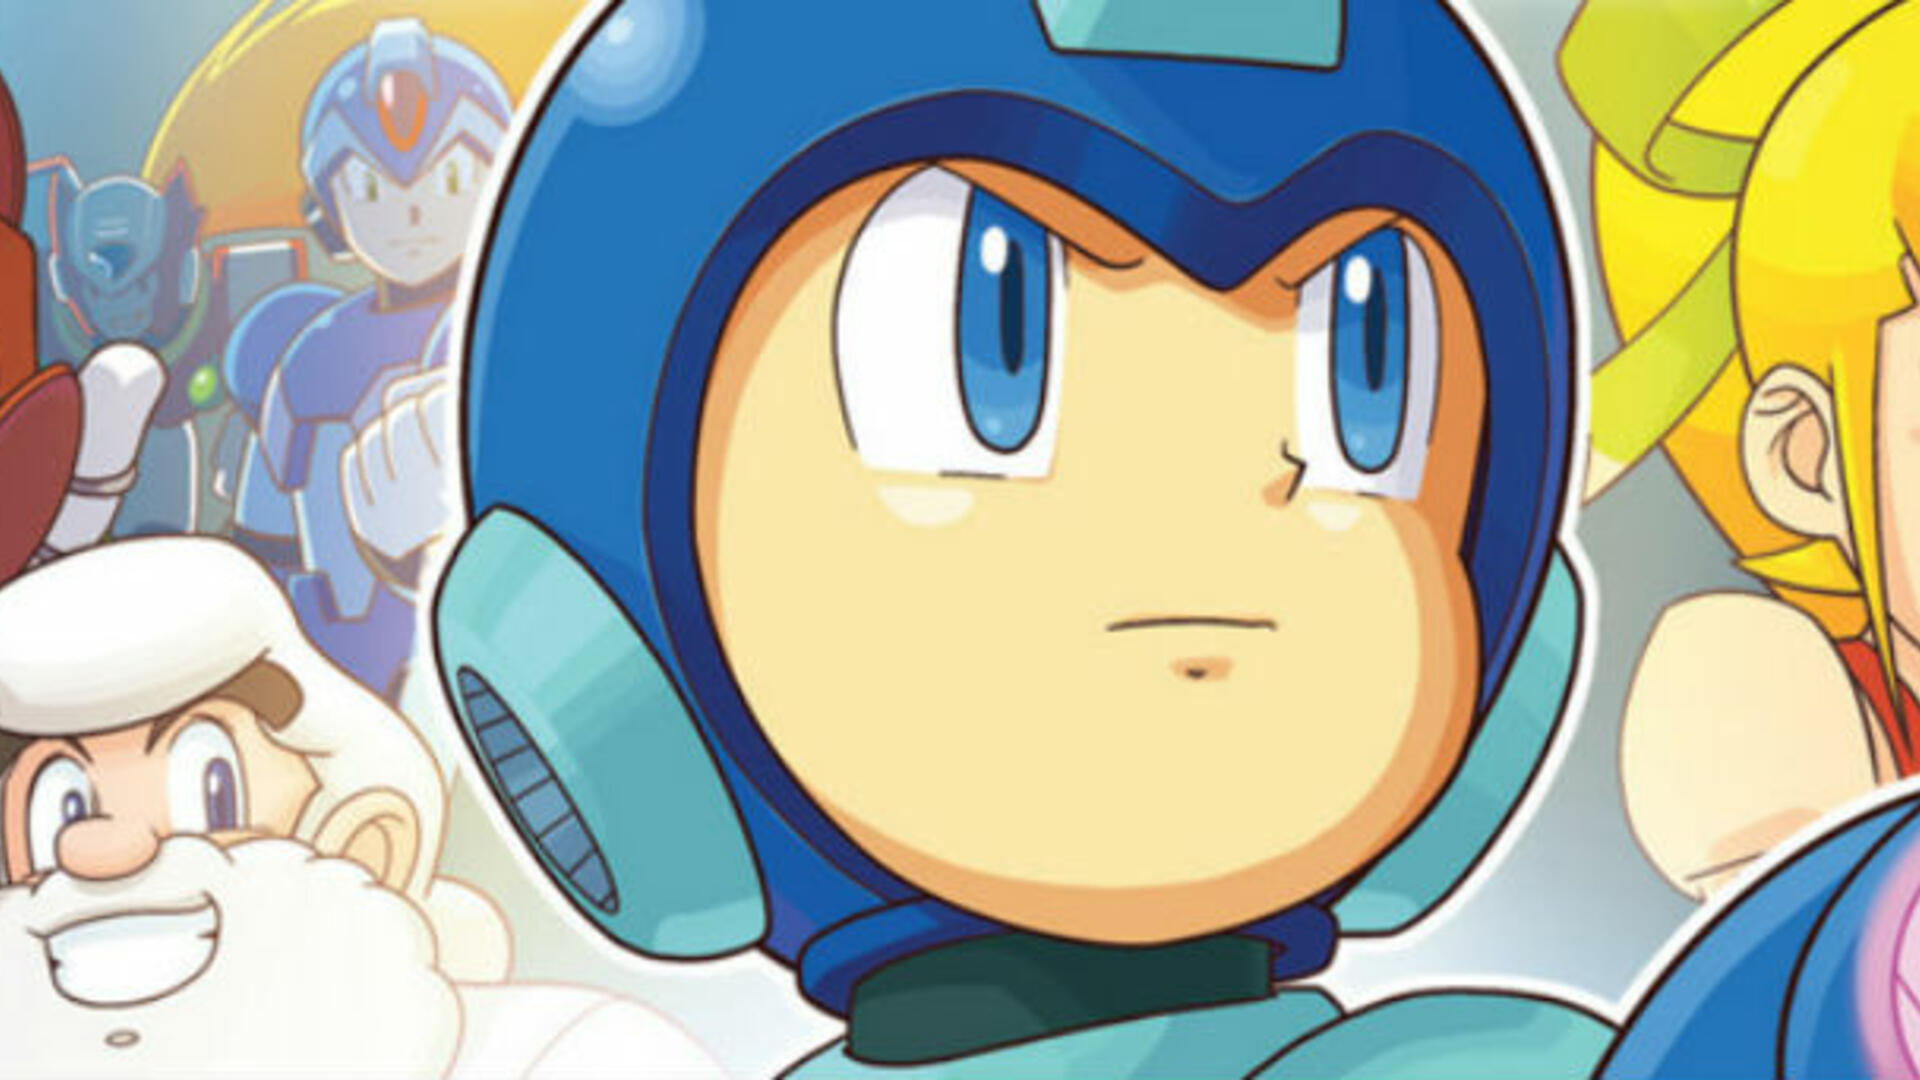 Mega Man 11's Double Gear System Takes Some Getting Used to if You're a Long-Time Mega Man Fan